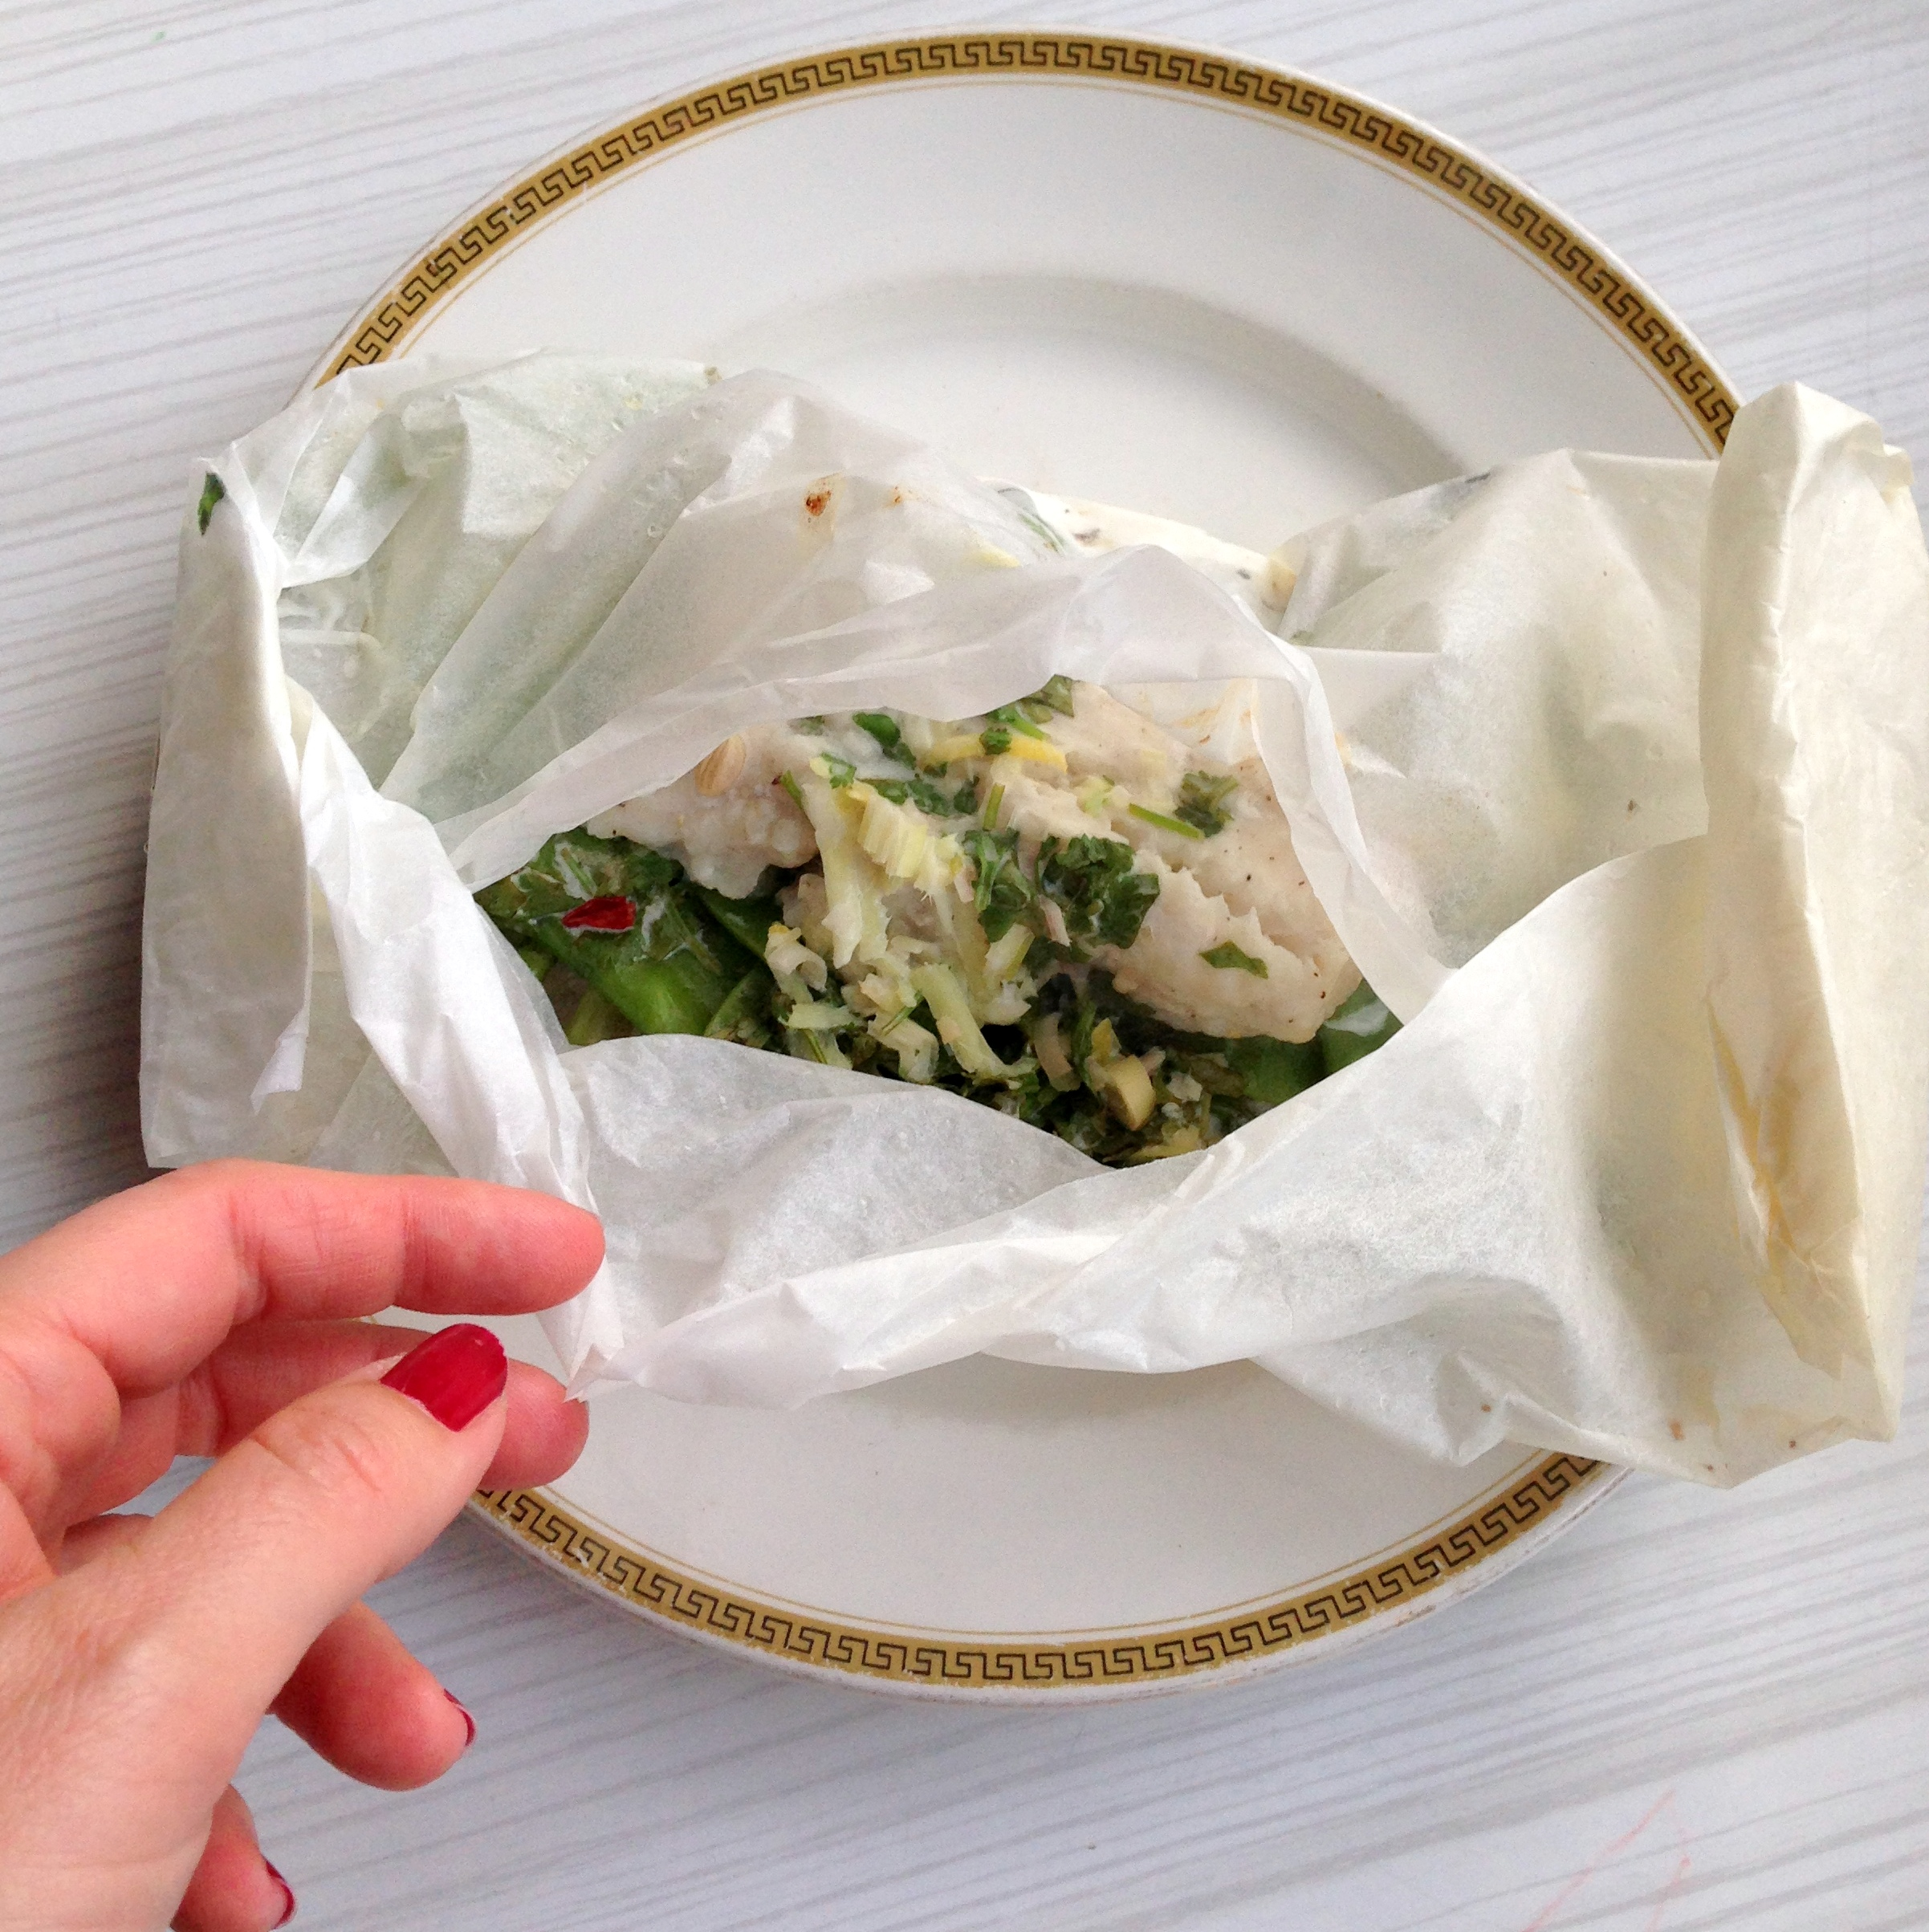 Beachhutcook's Barbecued Fish Parcels